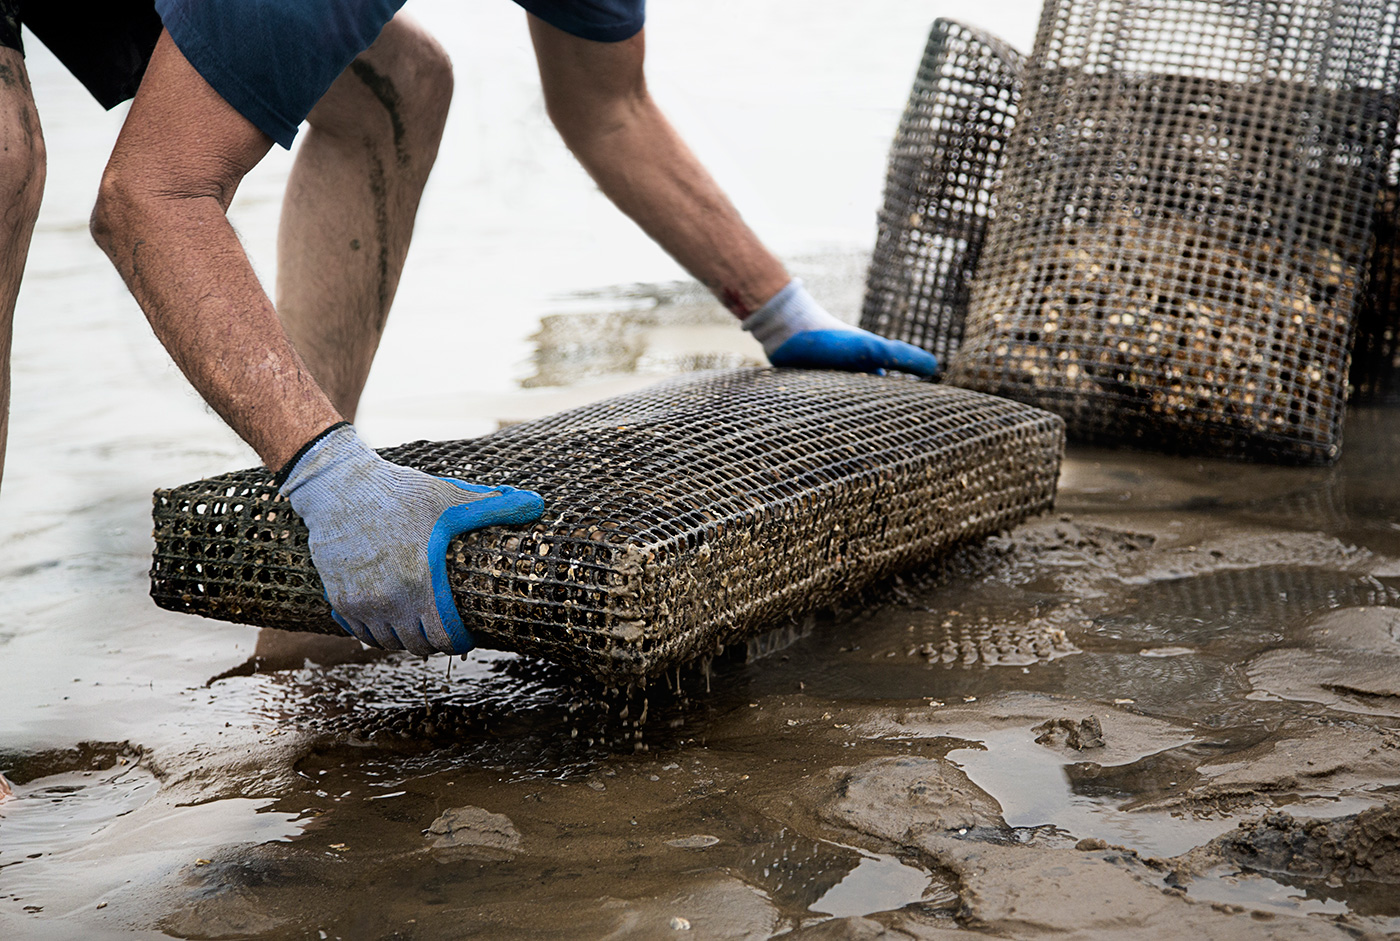 Editorial photography on location advertising oyster farmers.